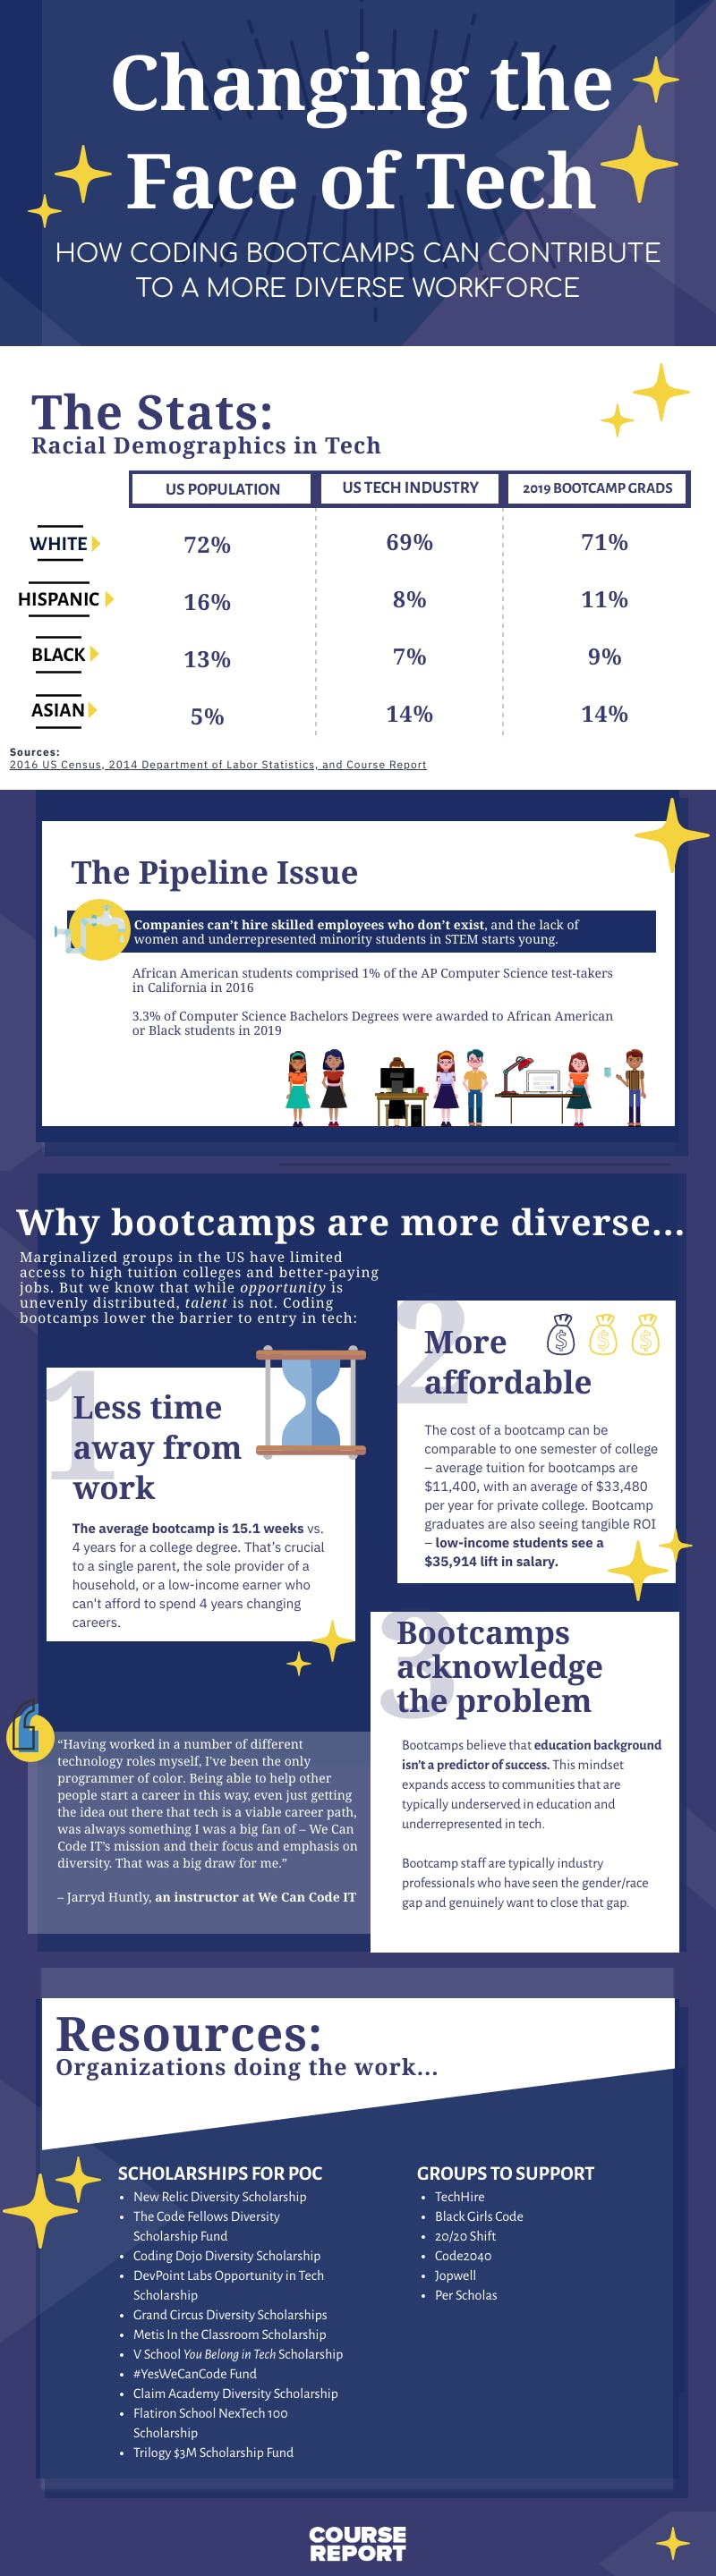 Diversity in tech infographic 2020